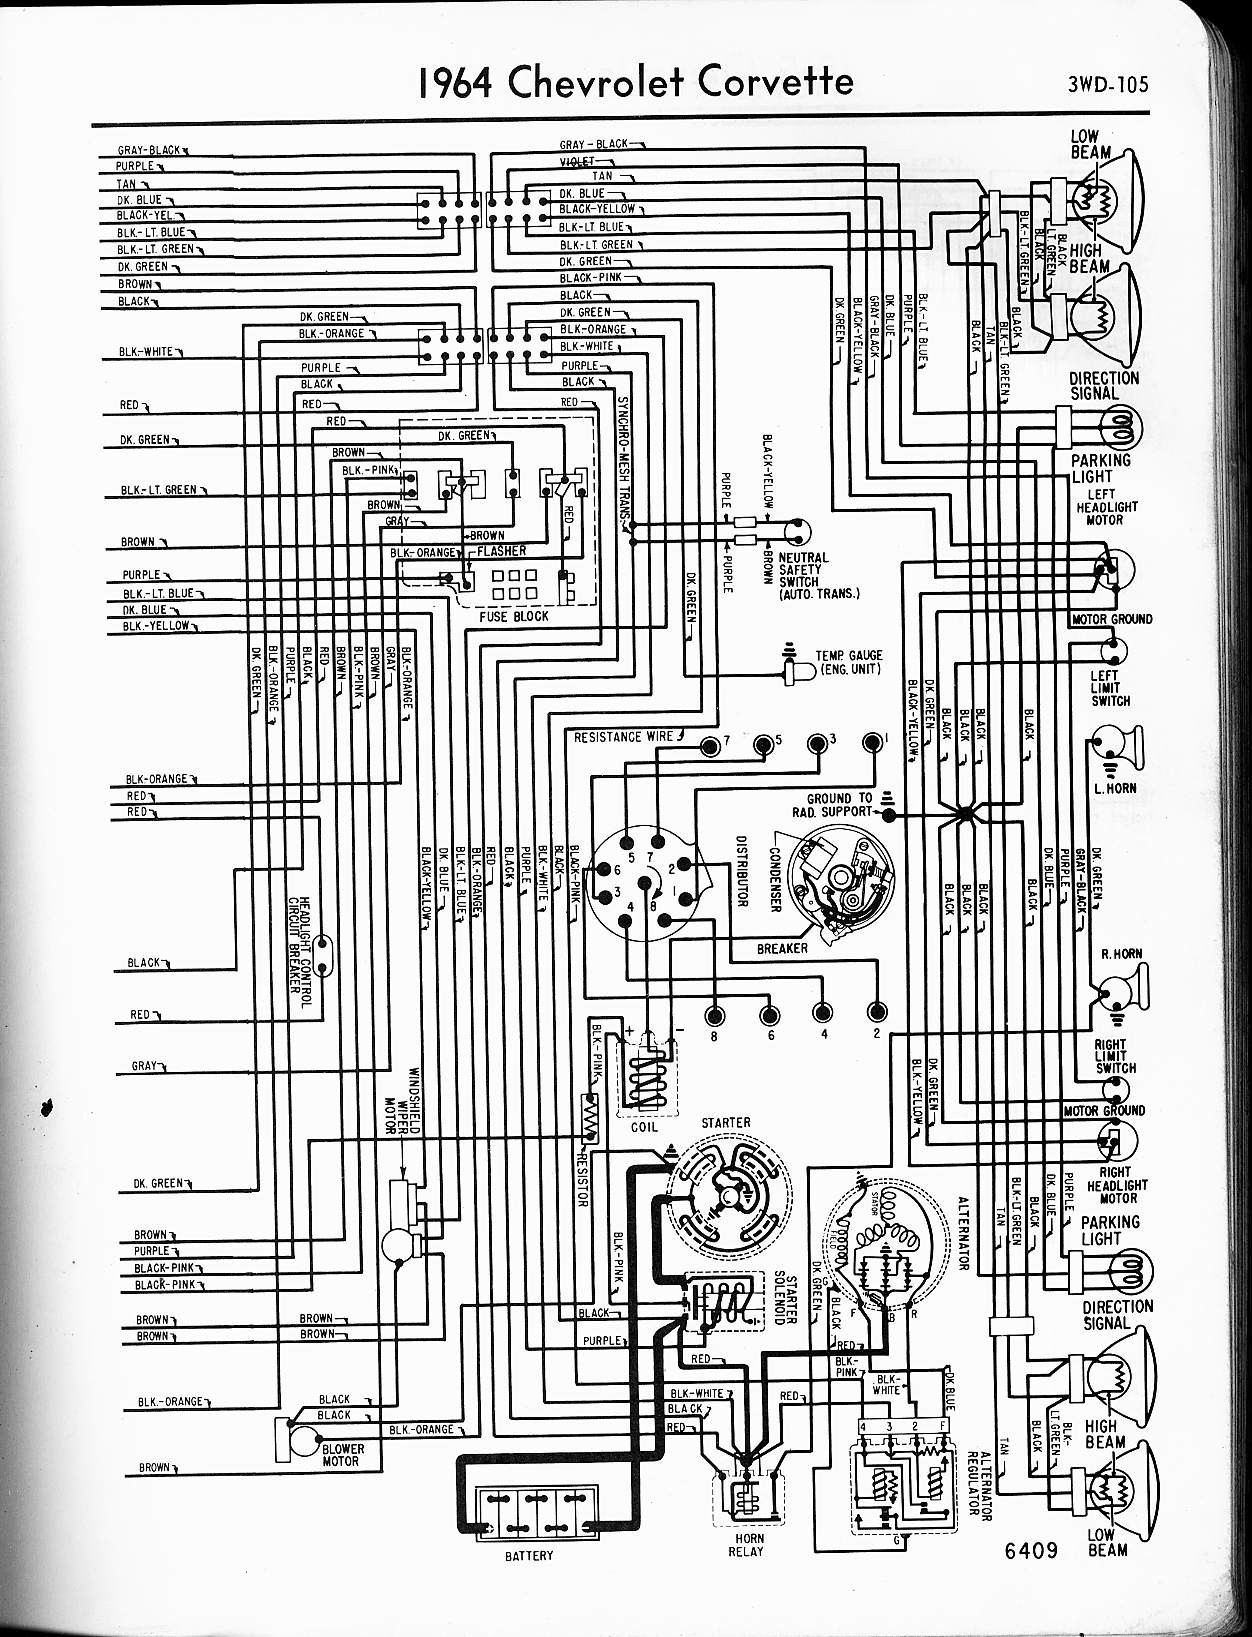 E Starter Wiring Diagram 1976 Chevy Nova Diagrams 1972 Schematic 81 Corvette Schematics Best Site Harness Color 1973